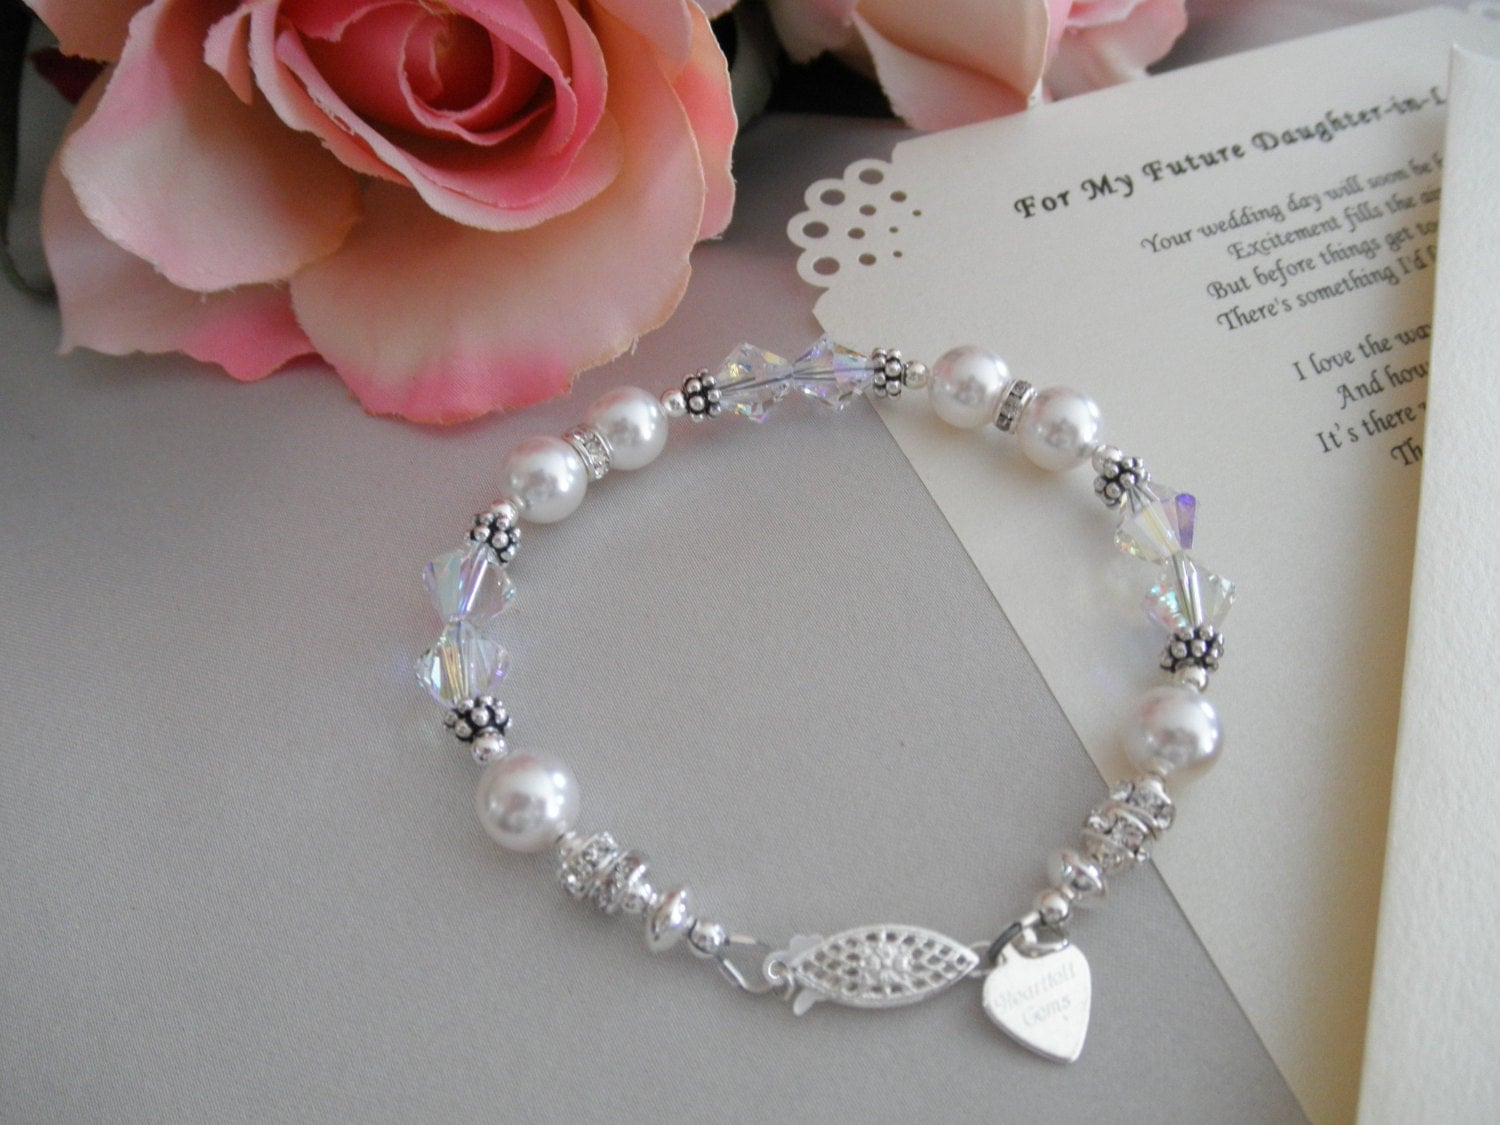 Daughter Son In Law Personalized Poem Christmas Gift: Wedding Bracelet And Personalized Poem Or Note For Your Future